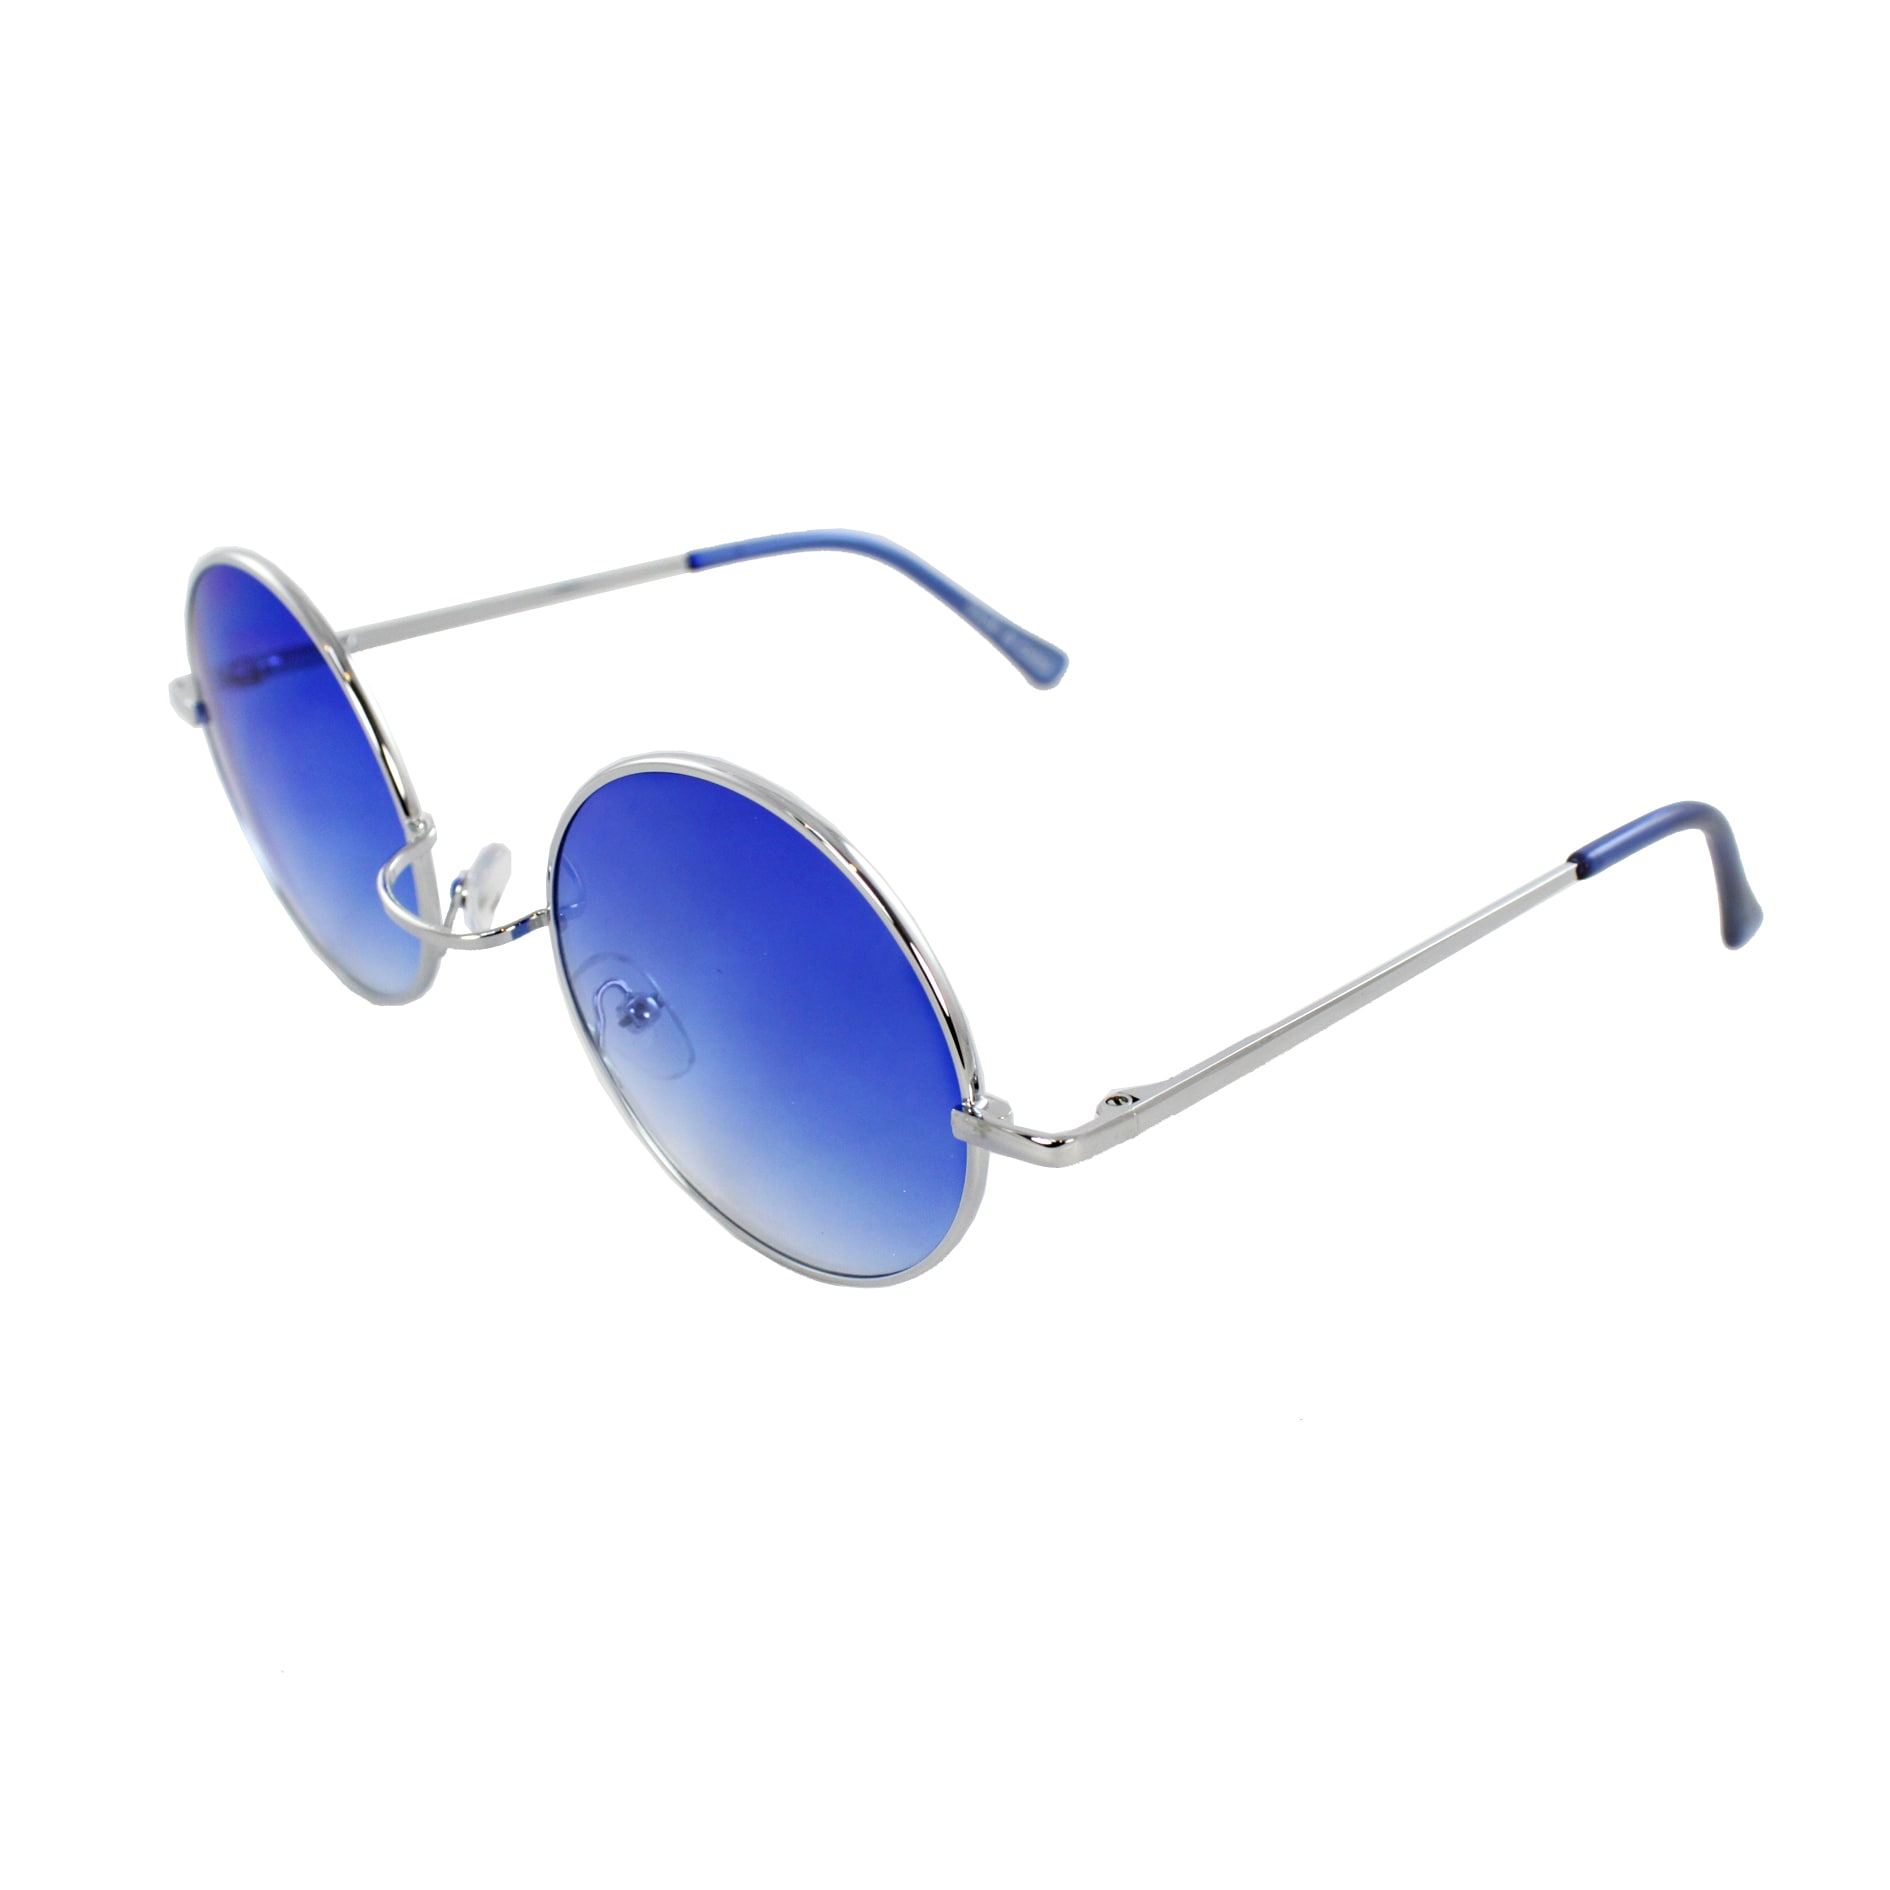 Retro Round Sunglasses Silver Blue Frame and Blue Gradient Lenses for Women and Men